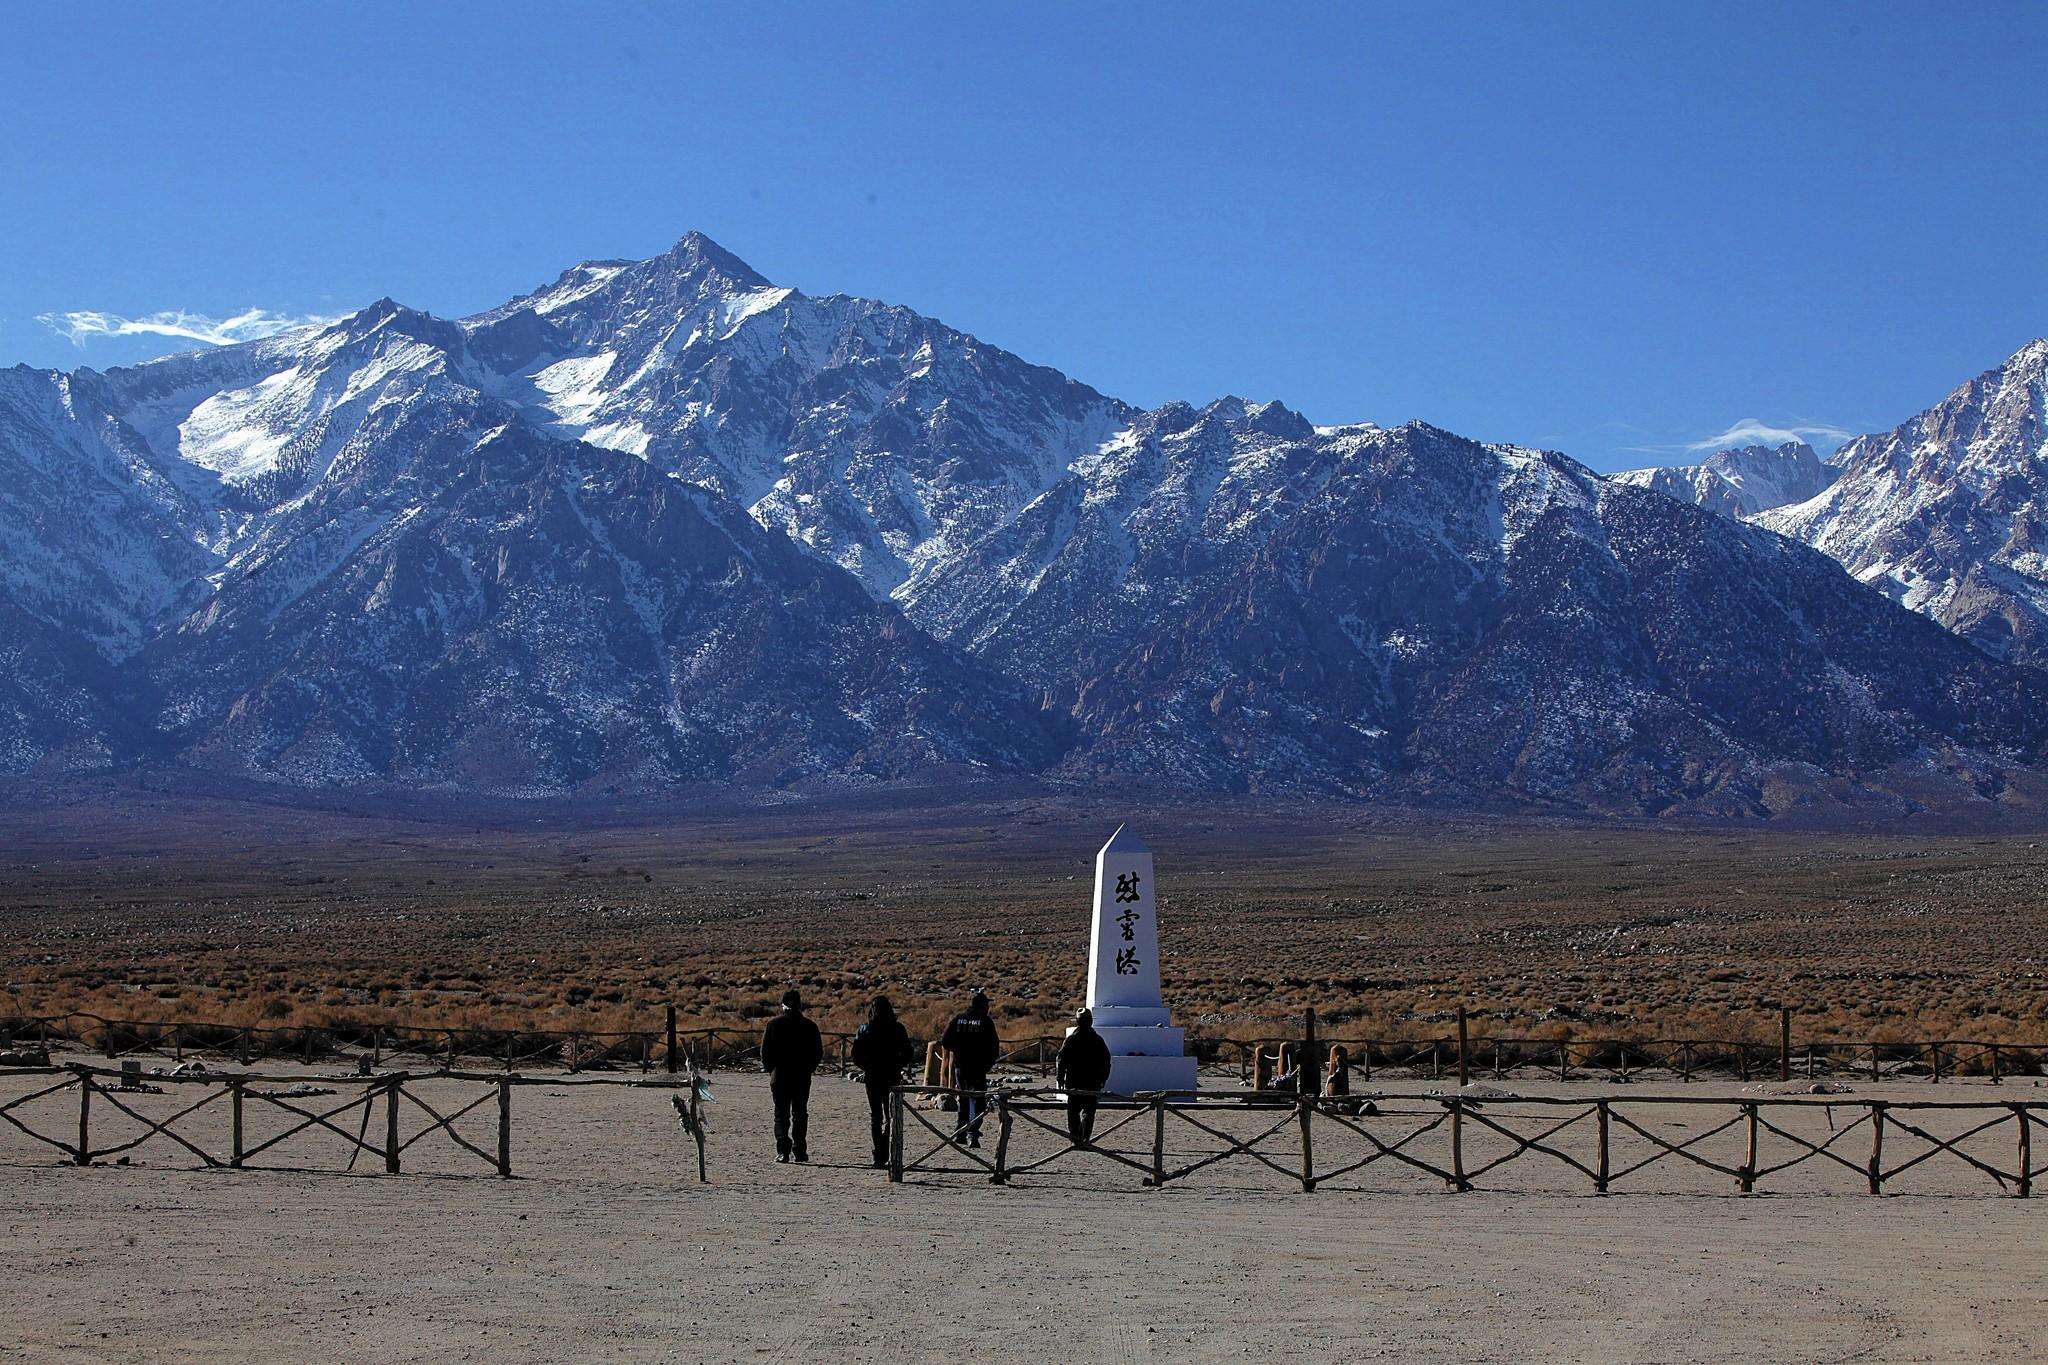 Opponents are concerned that views of a solar complex in the distance would destroy an important element in understanding what internees here experienced 70 years ago: To be in Manzanar felt like being in the middle of nowhere.